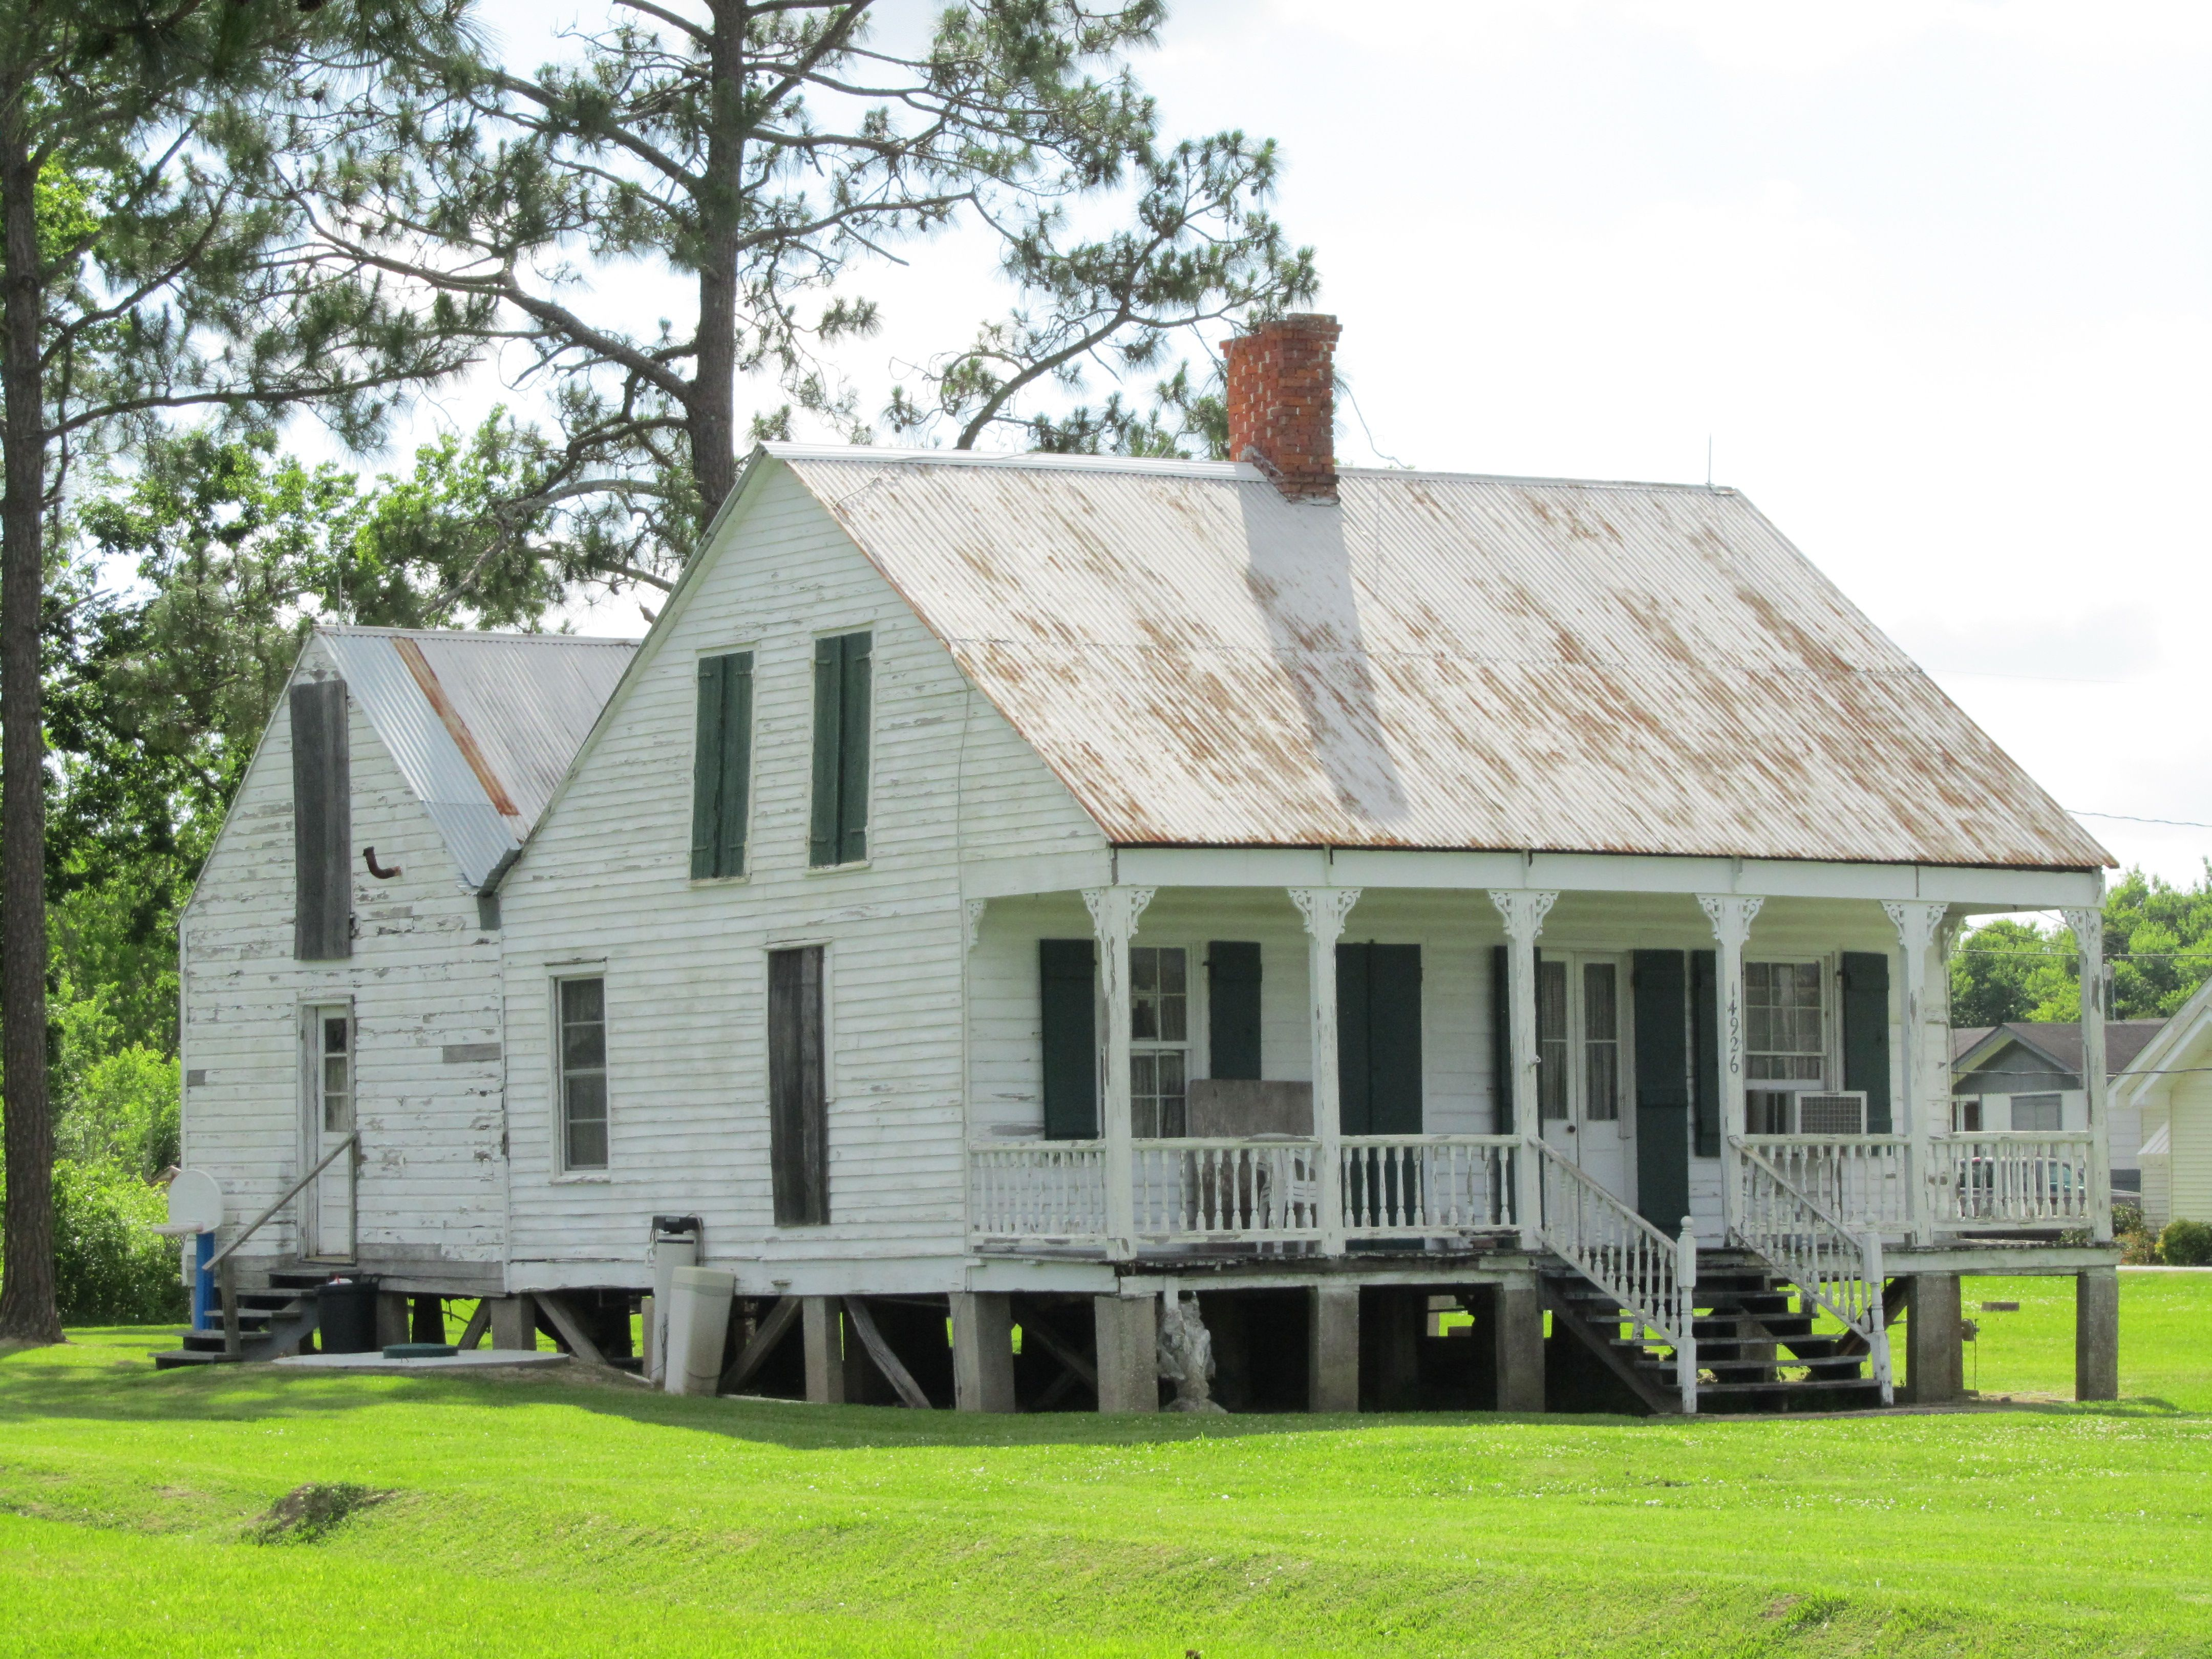 Hwy 1 acadian creole cottages pinterest farmhouse for Cottage architecture